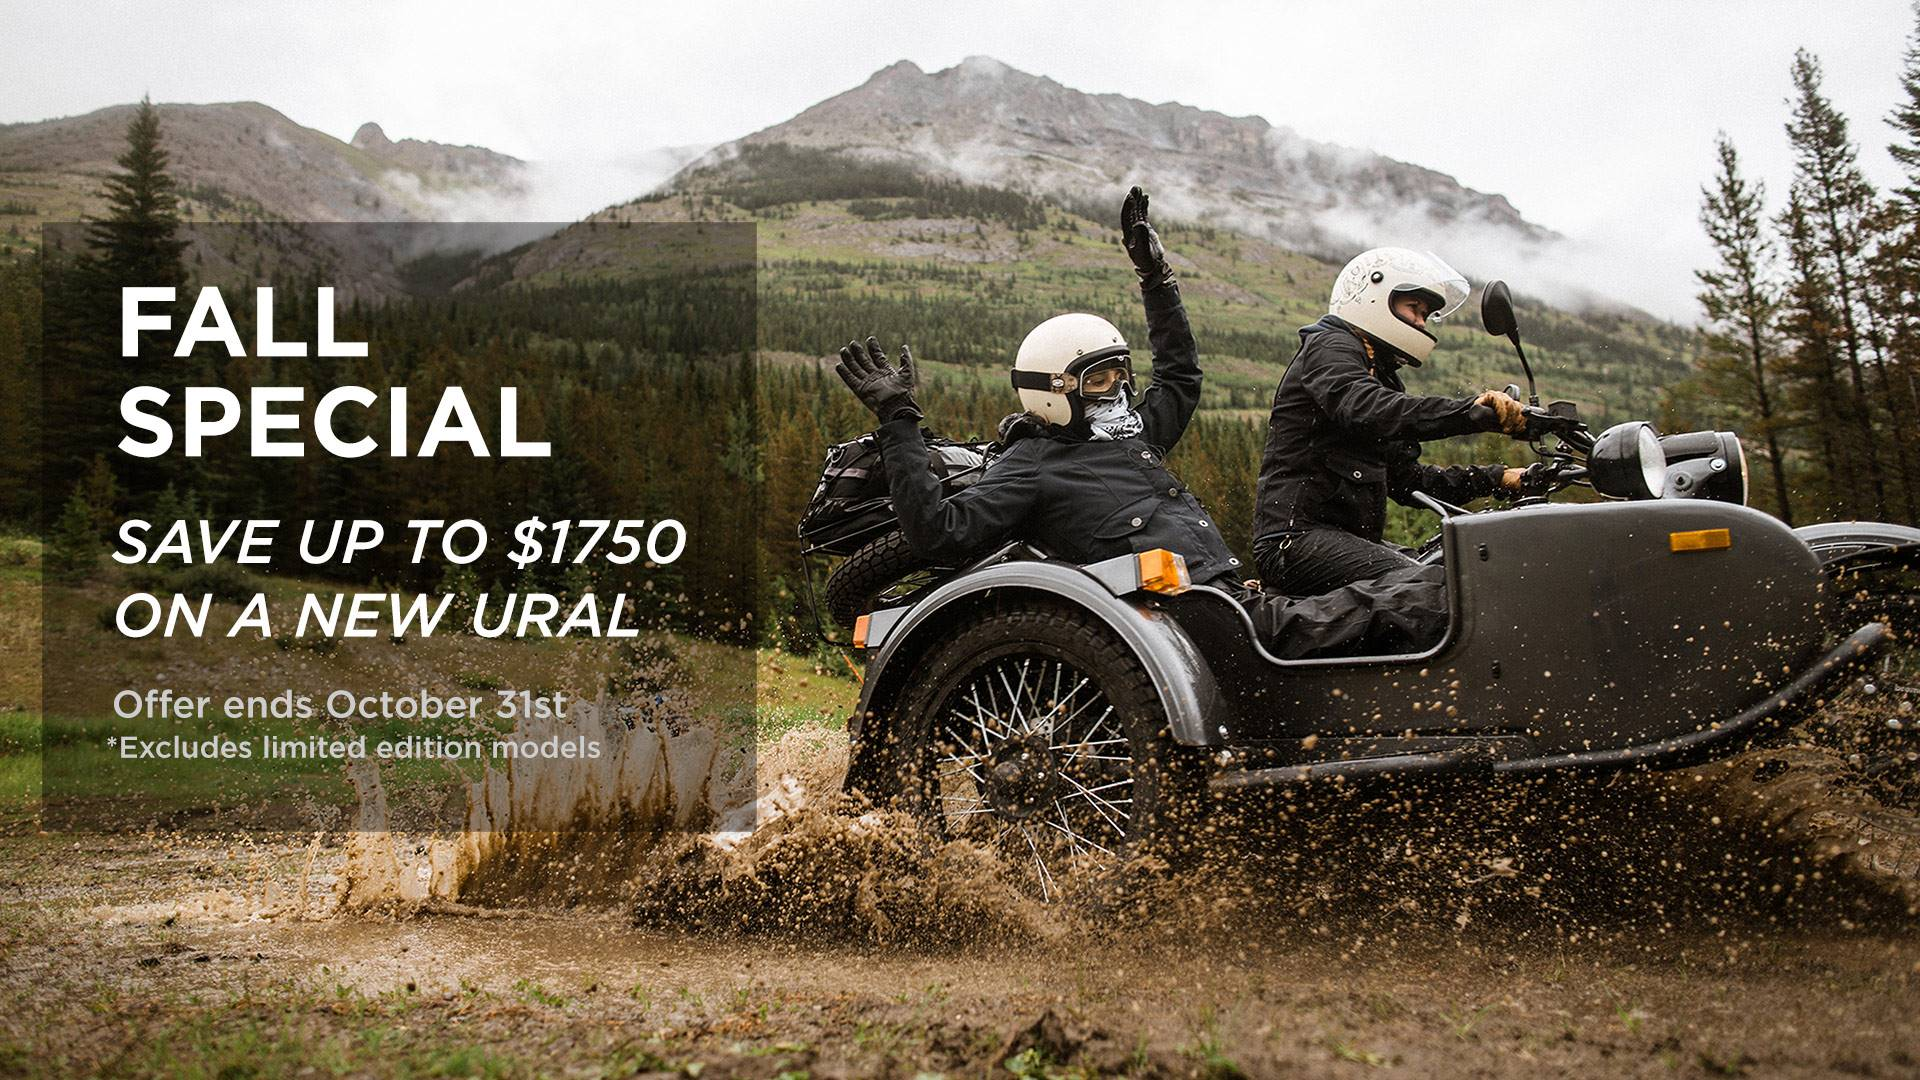 Ural Russian Motorcycles - Fall Special